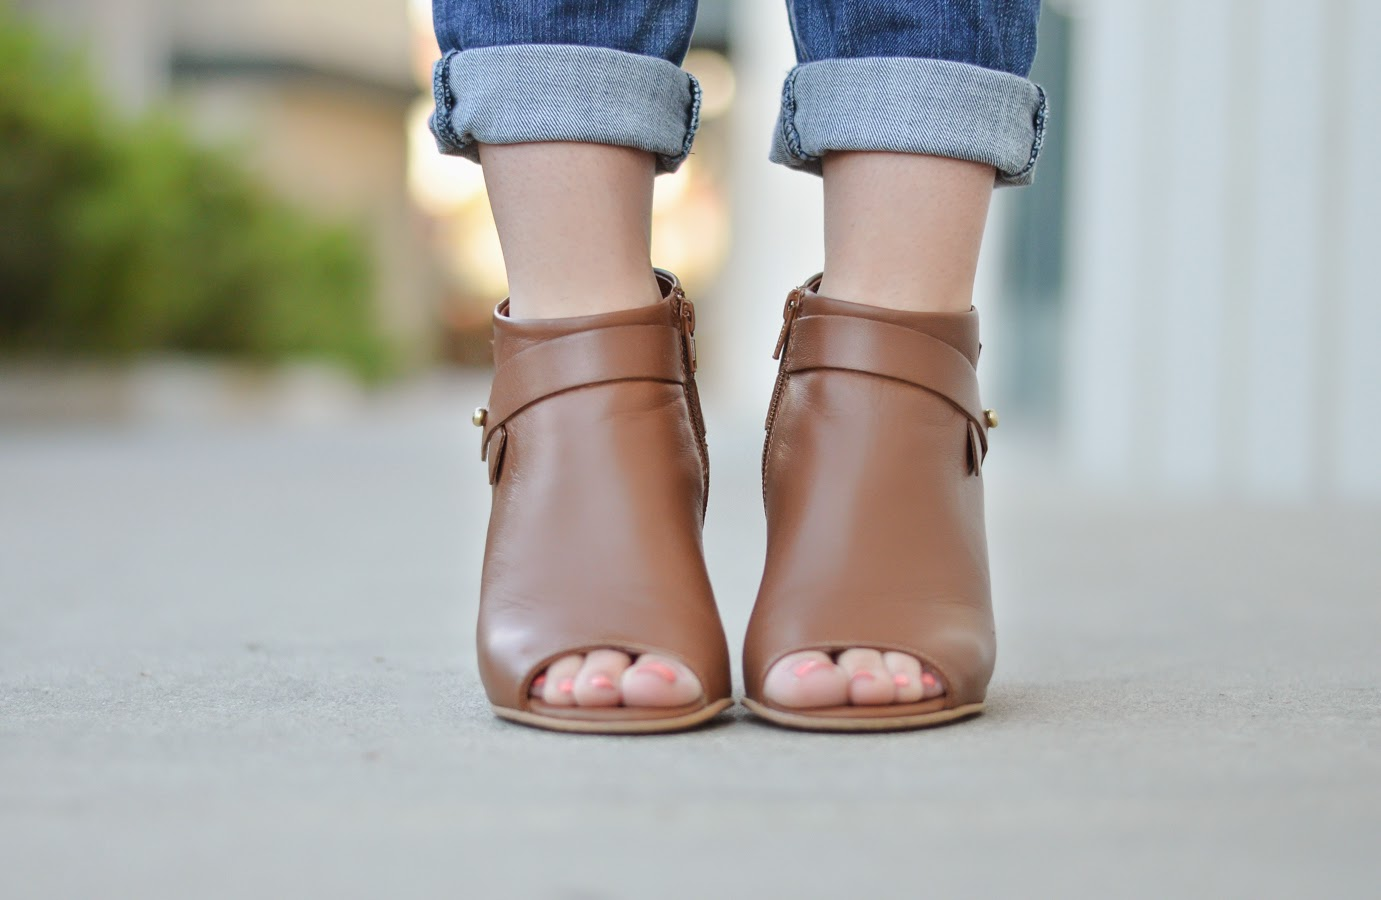 Steve Madden Peep Toe Booties via @lucismorsels